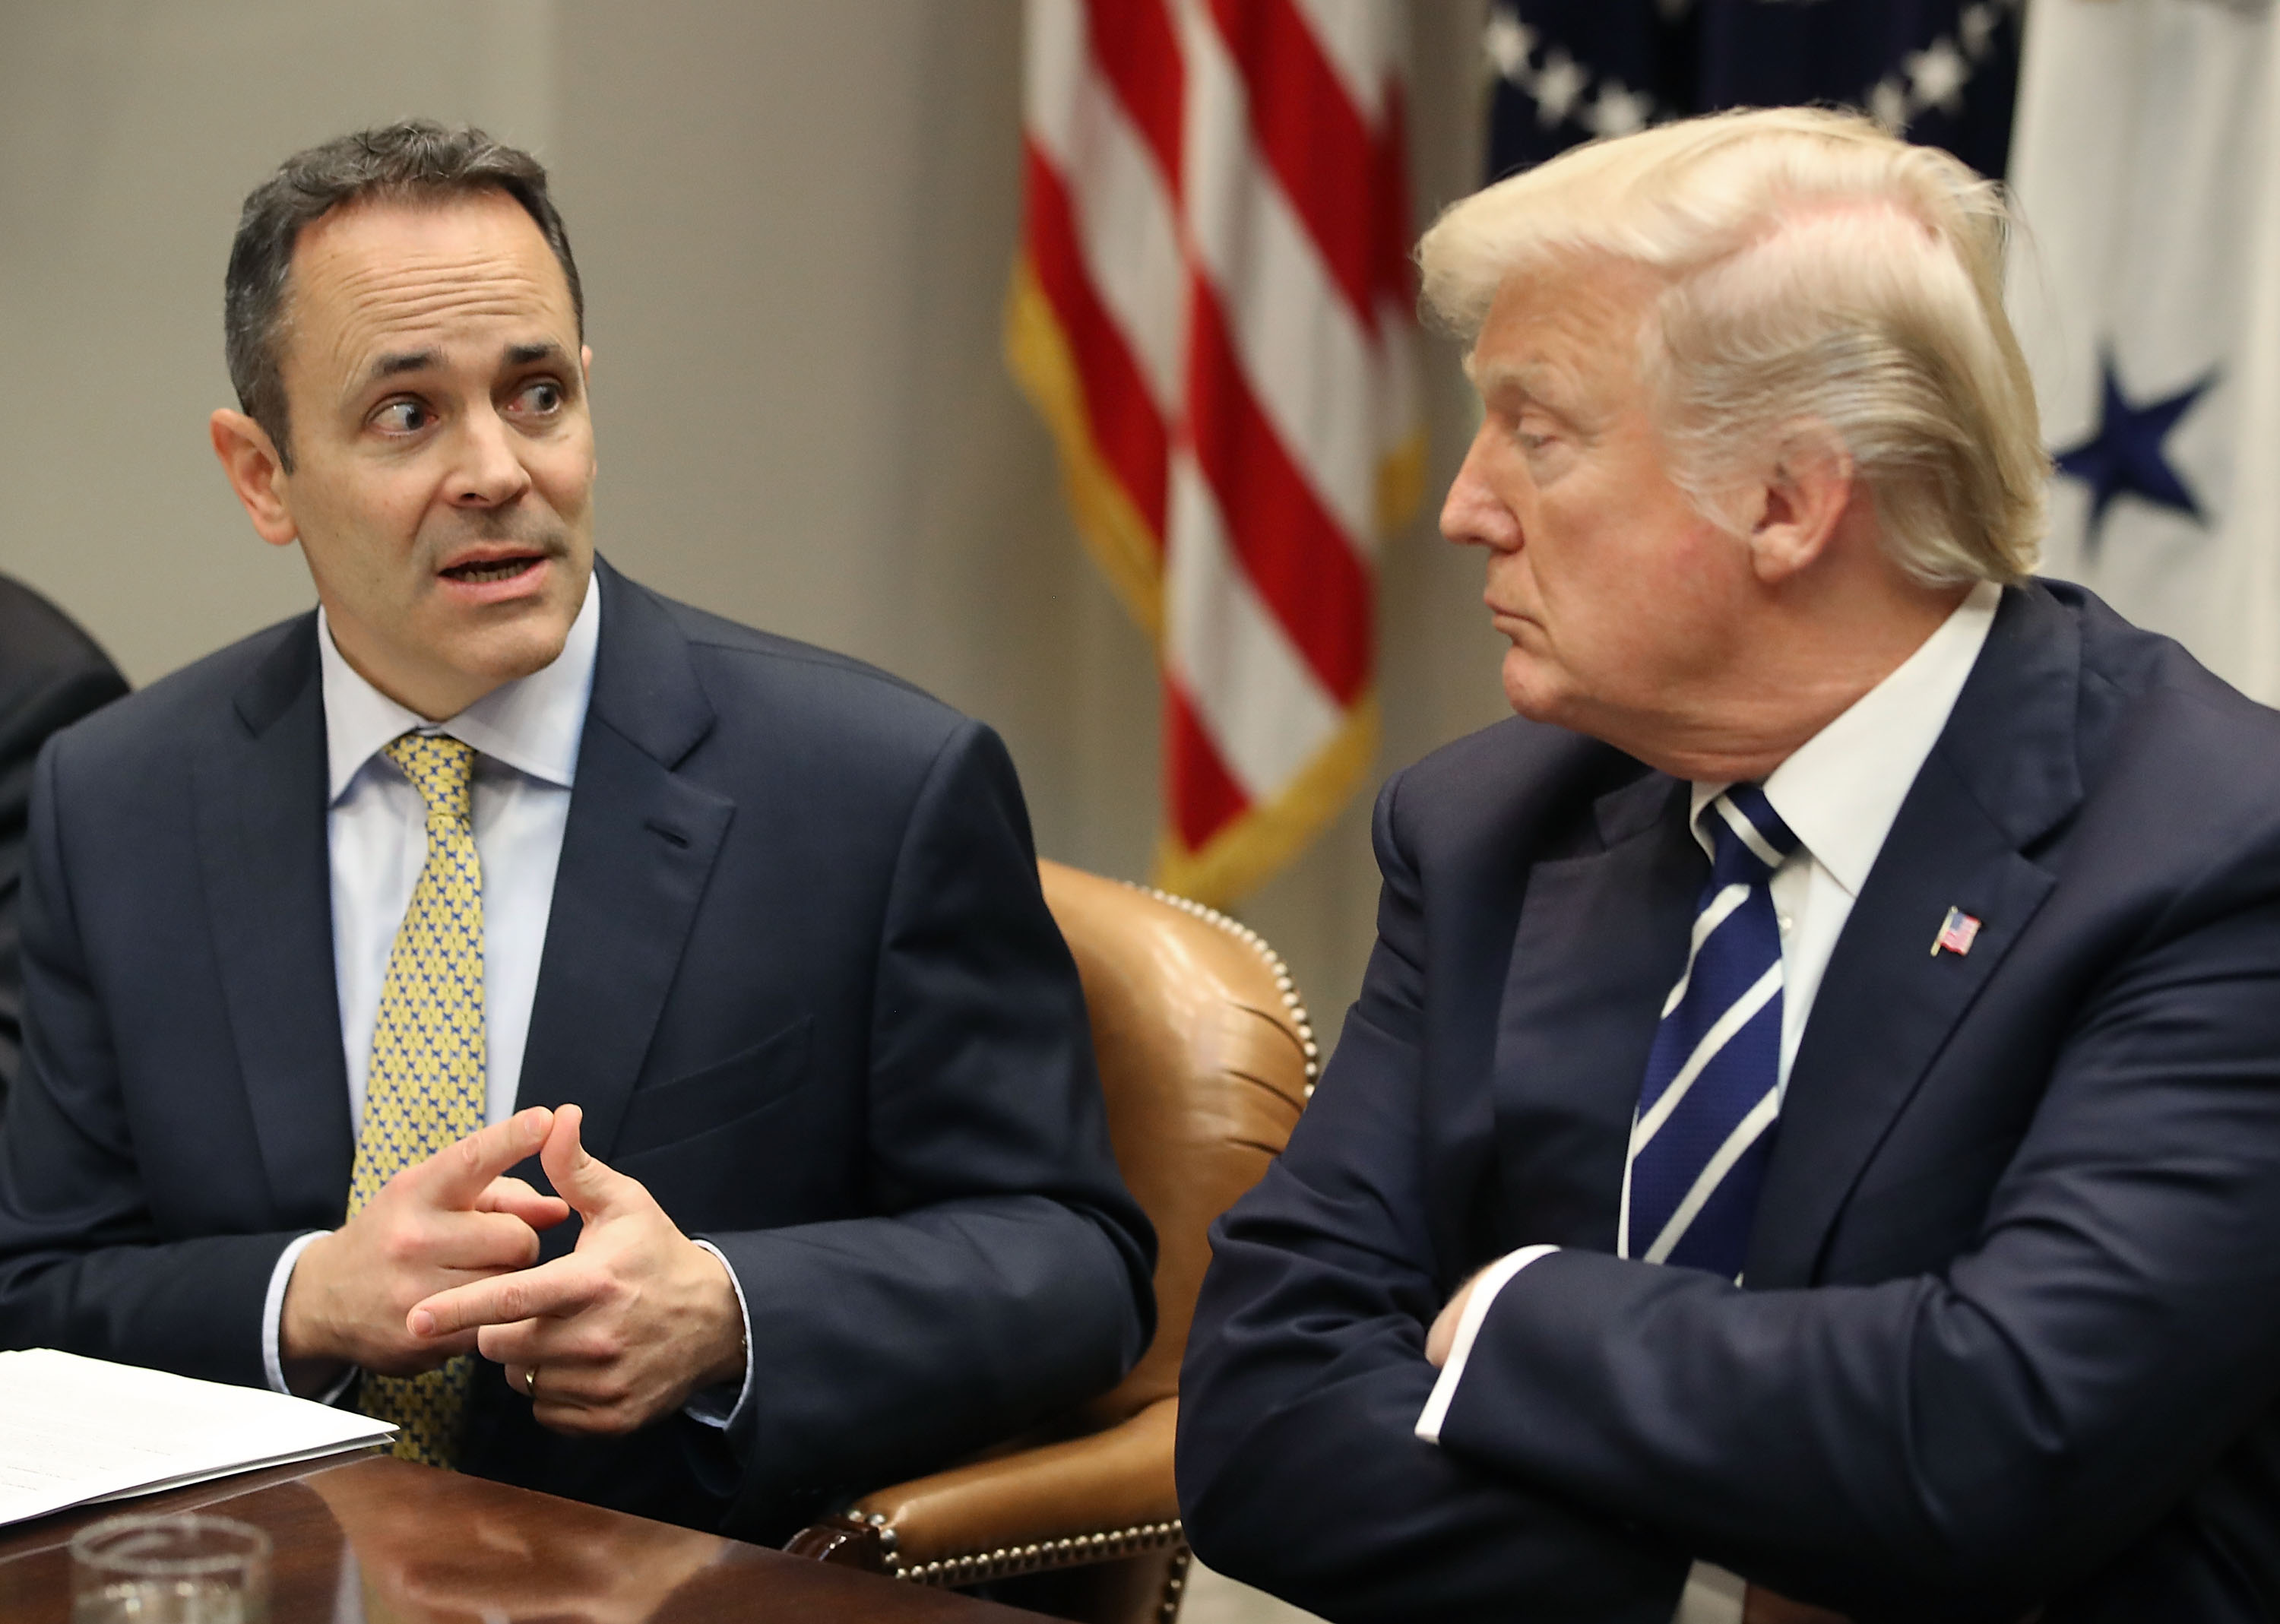 Kentucky Gov. Matt Bevin sits to the left of President Donald Trump and speaks to him at a roundtable discussion.